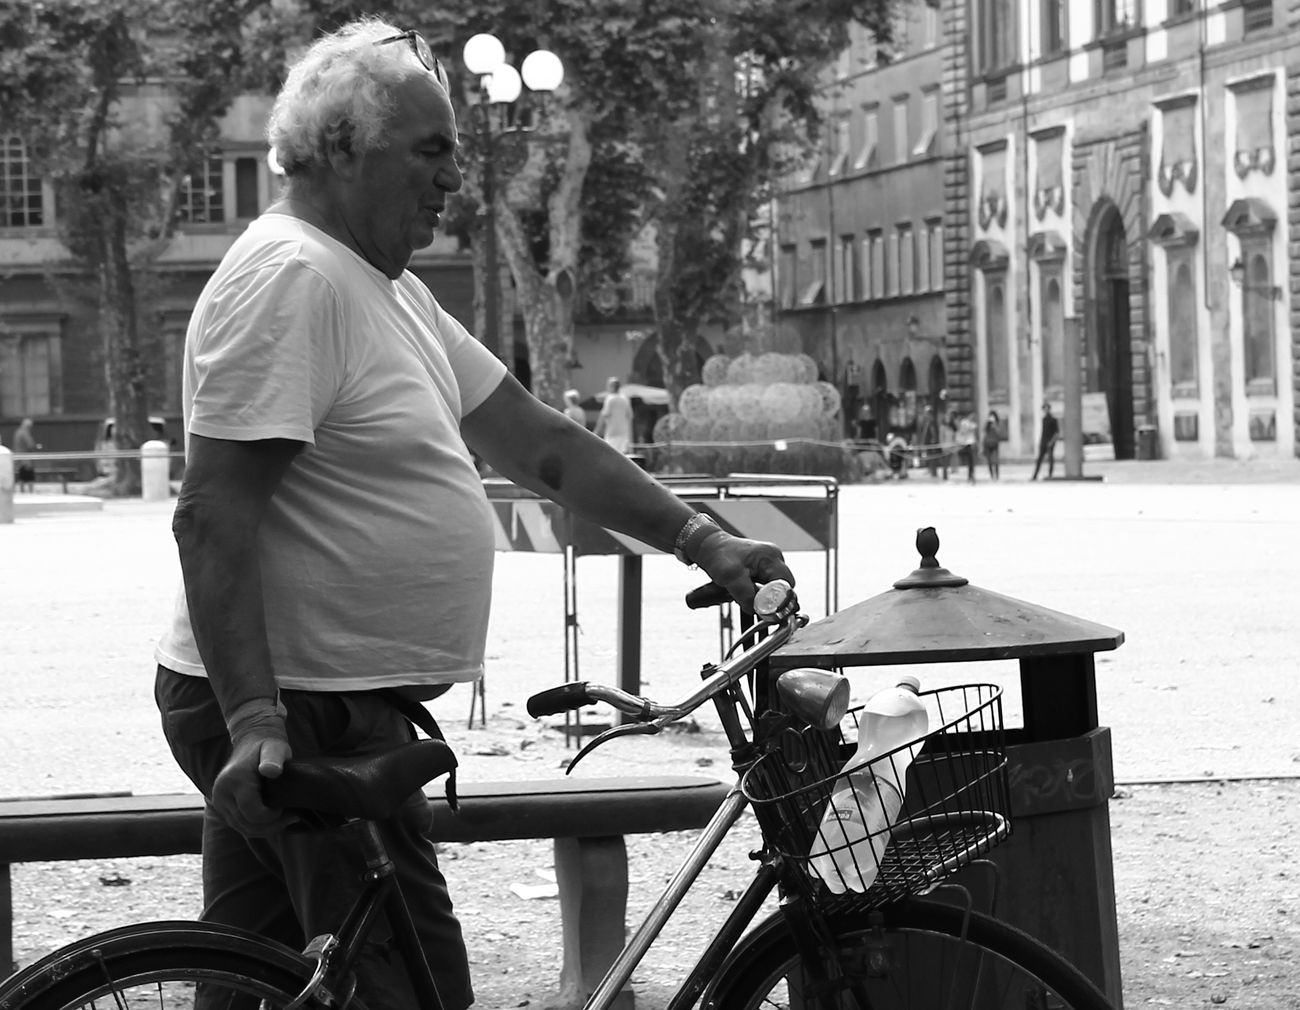 Bicycle Cycling City Break One Person Outdoors Real People One Man Only Break